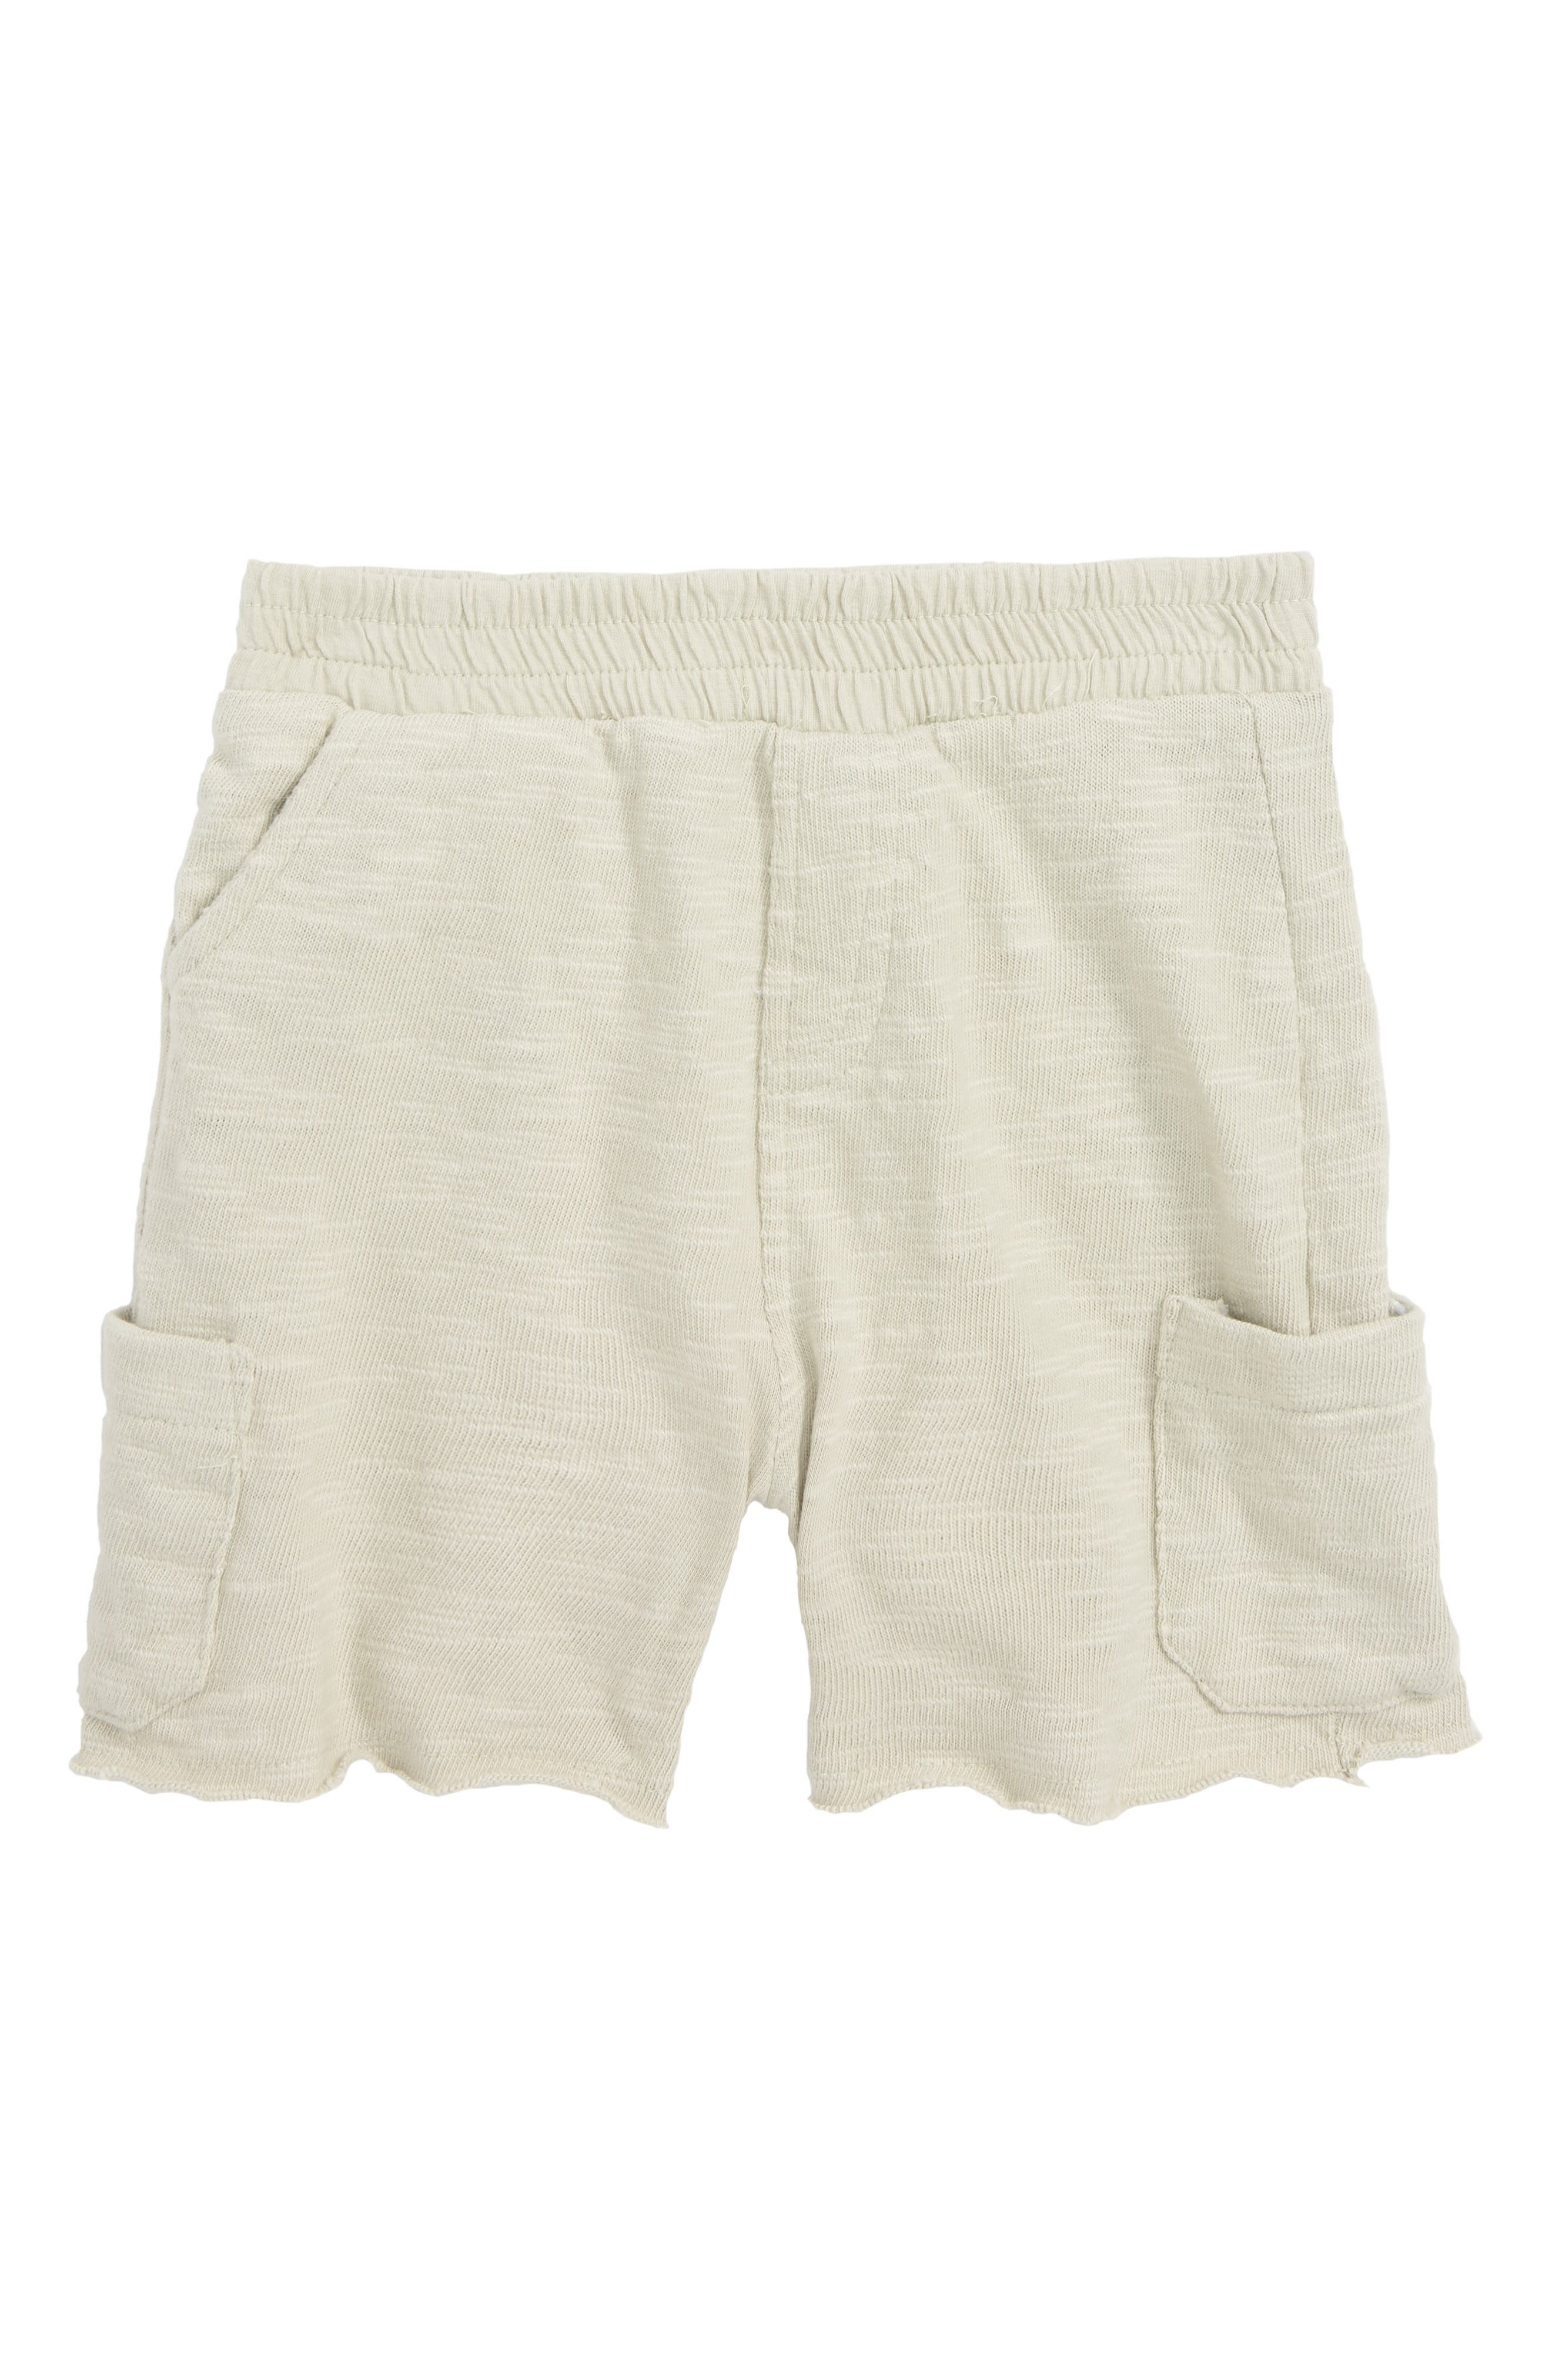 Asher Knit Cargo Shorts,                         Main,                         color, 020